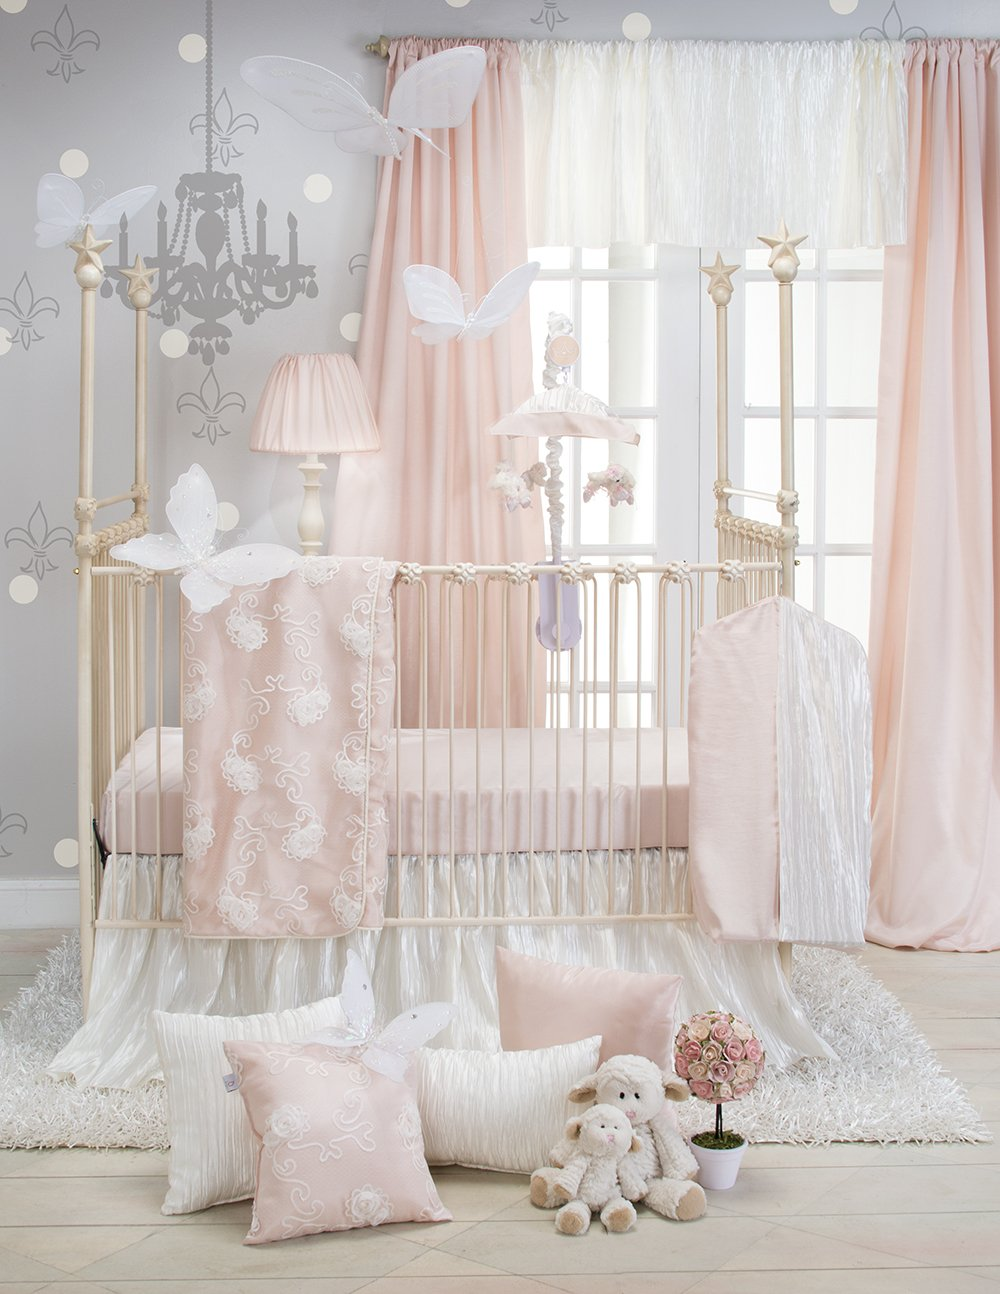 Crib Bedding Set Lil Princess by Glenna Jean | Baby Girl Nursery + Hand Crafted with Premium Quality Fabrics | Includes Quilt, Sheet and Bed Skirt with Pink and Ivory Accents by Sweet Potatoes